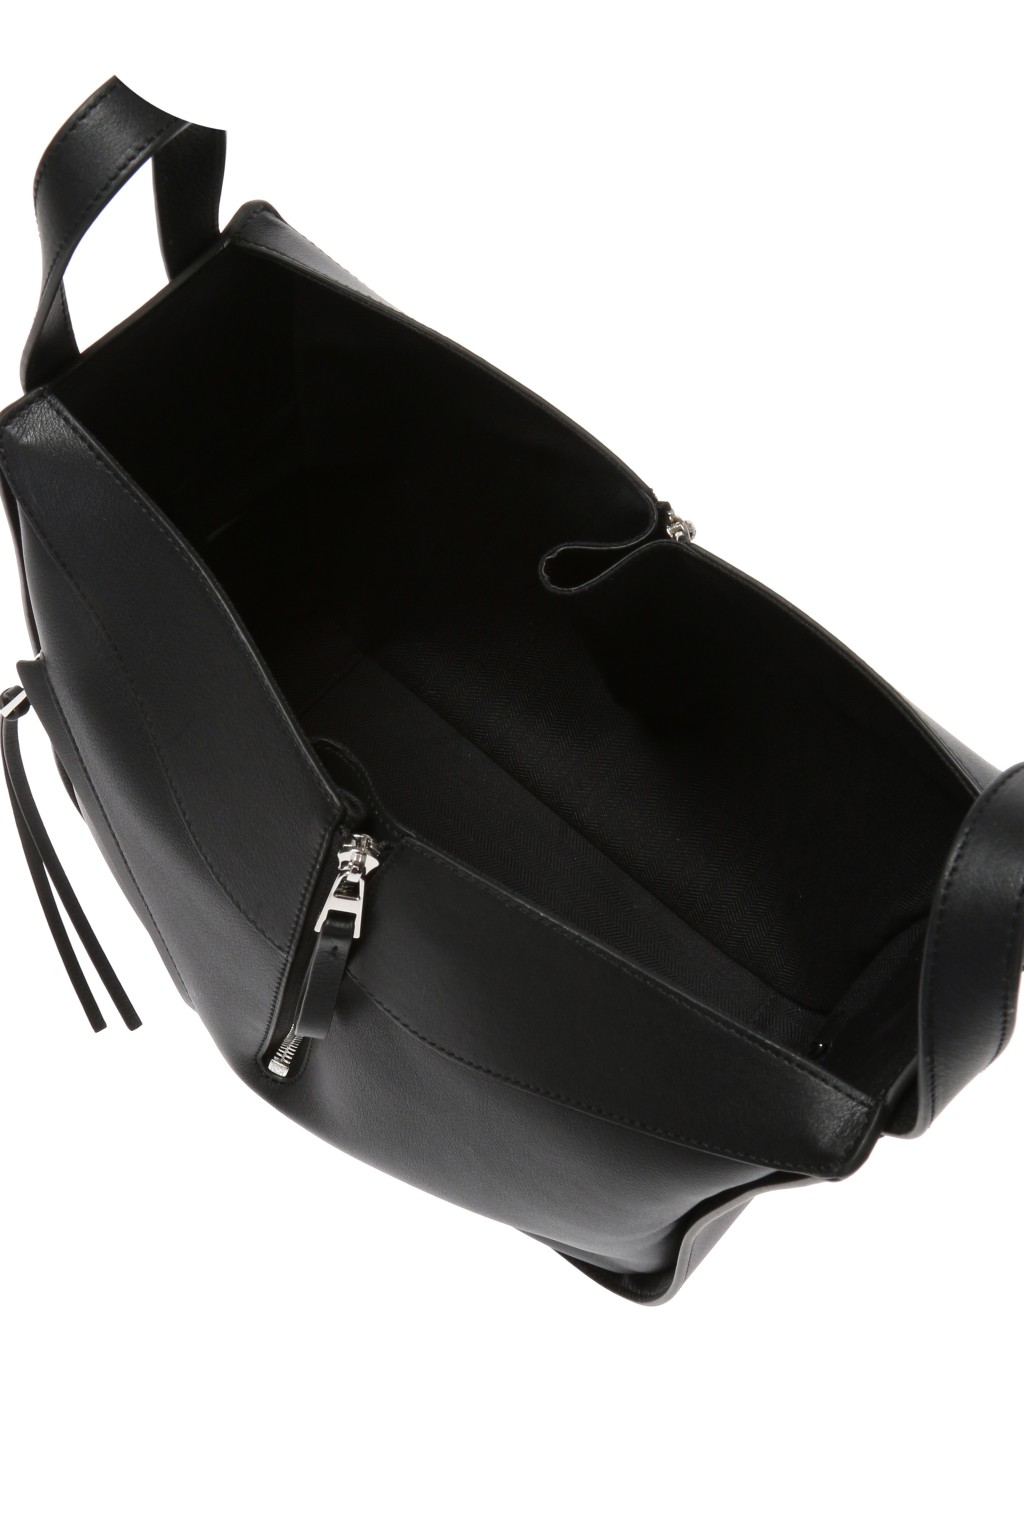 Loewe 'Hammock small' shoulder bag